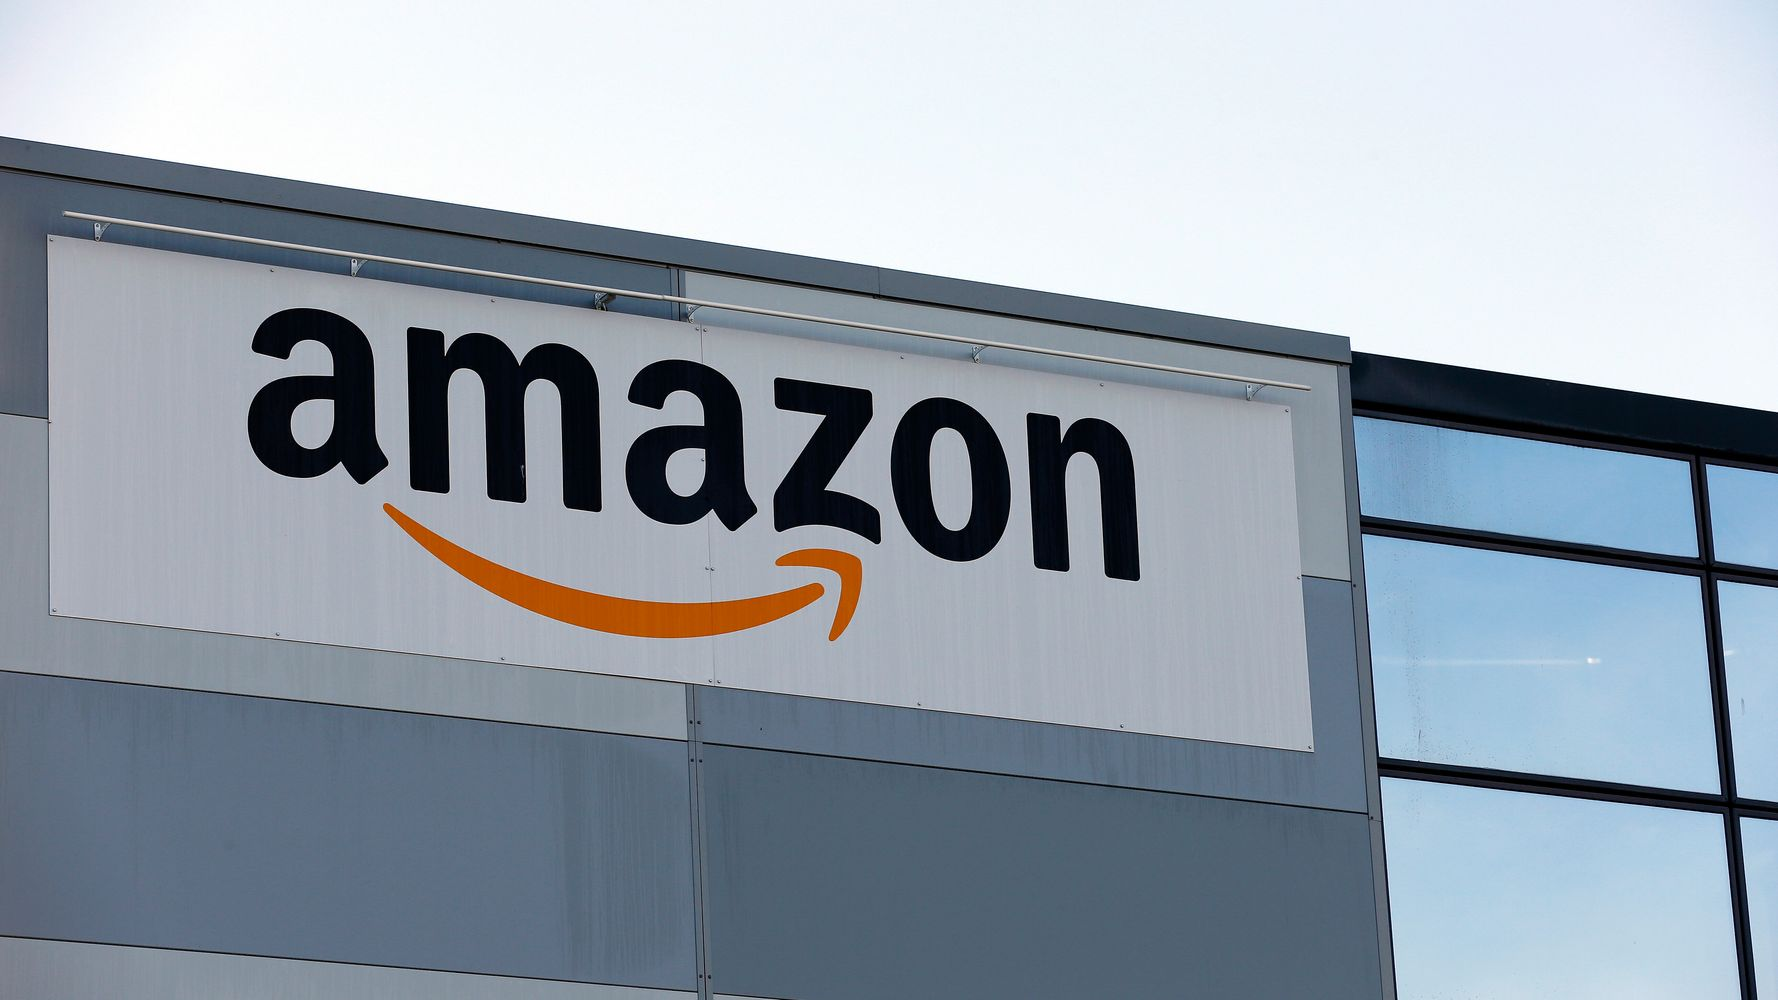 Amazon Warehouse Workers File For Union Election In Alabama